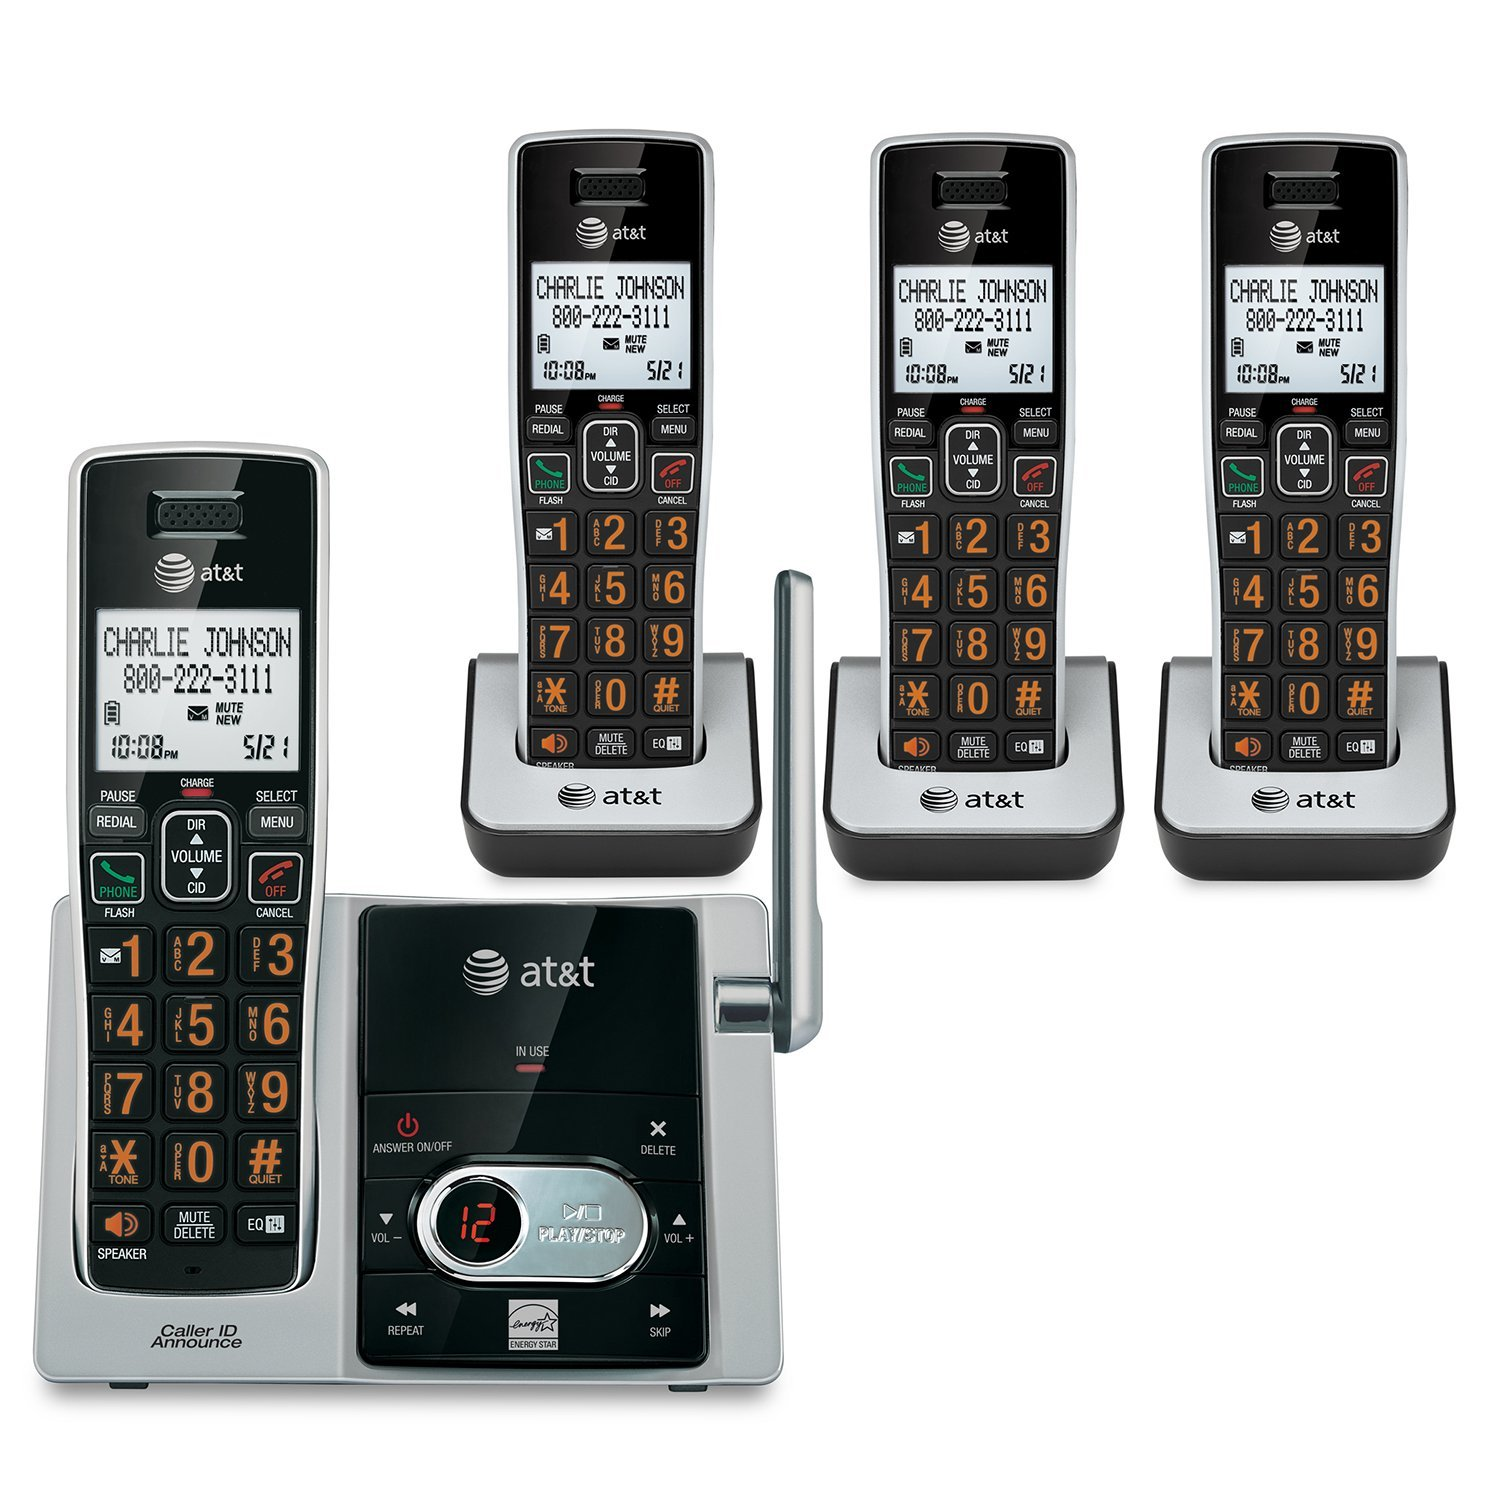 AT&T CL82413 Cordless Answering System with Caller ID/Call Waiting (4-handset system)